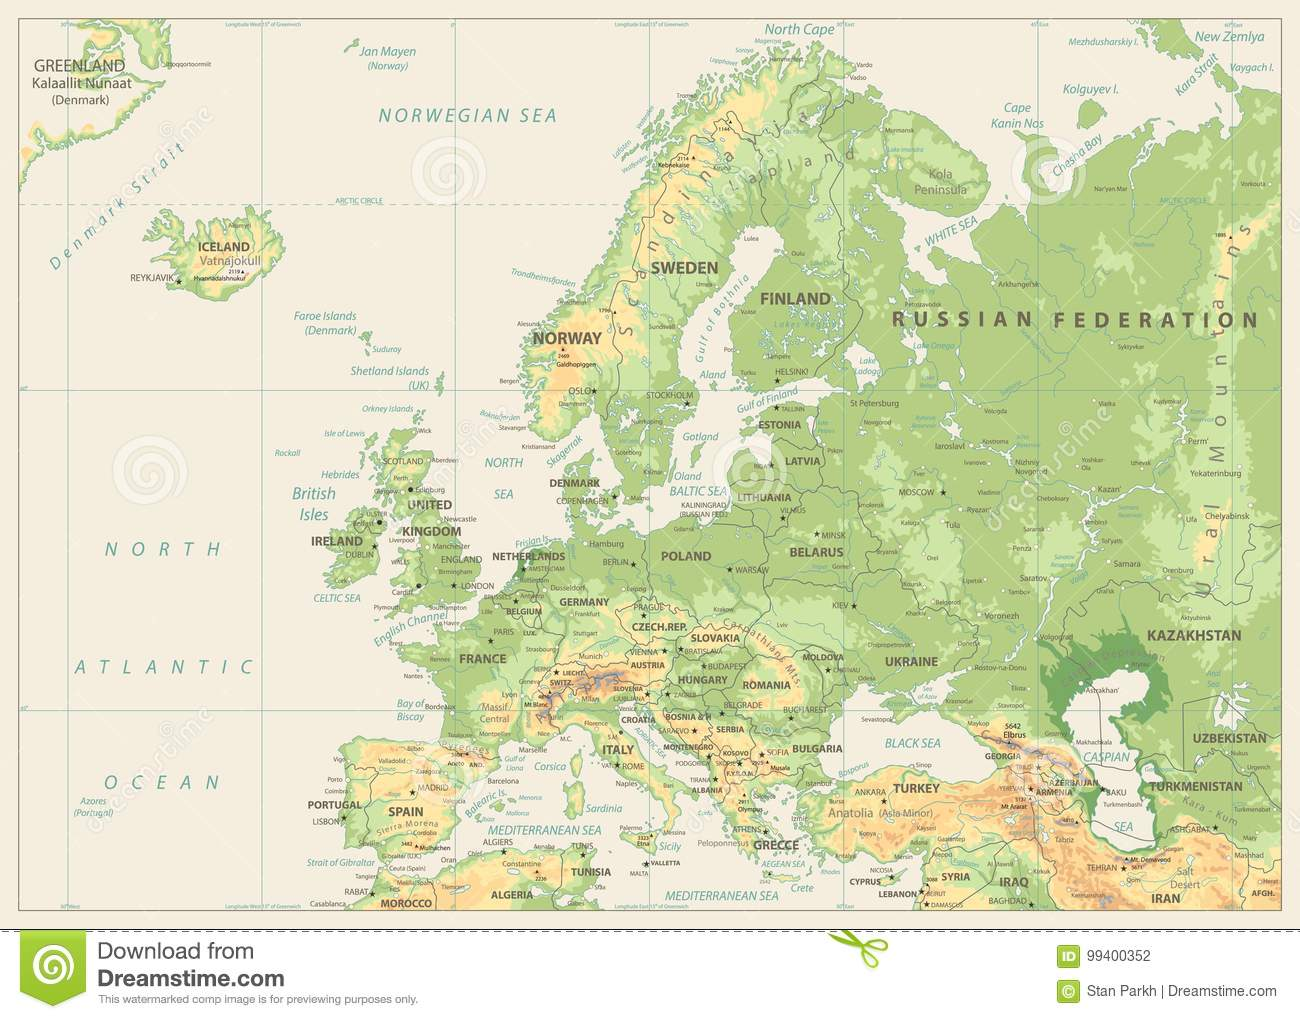 Europe Physical Map Retro Colors No Bathymetry Stock Vector - Europe physical map